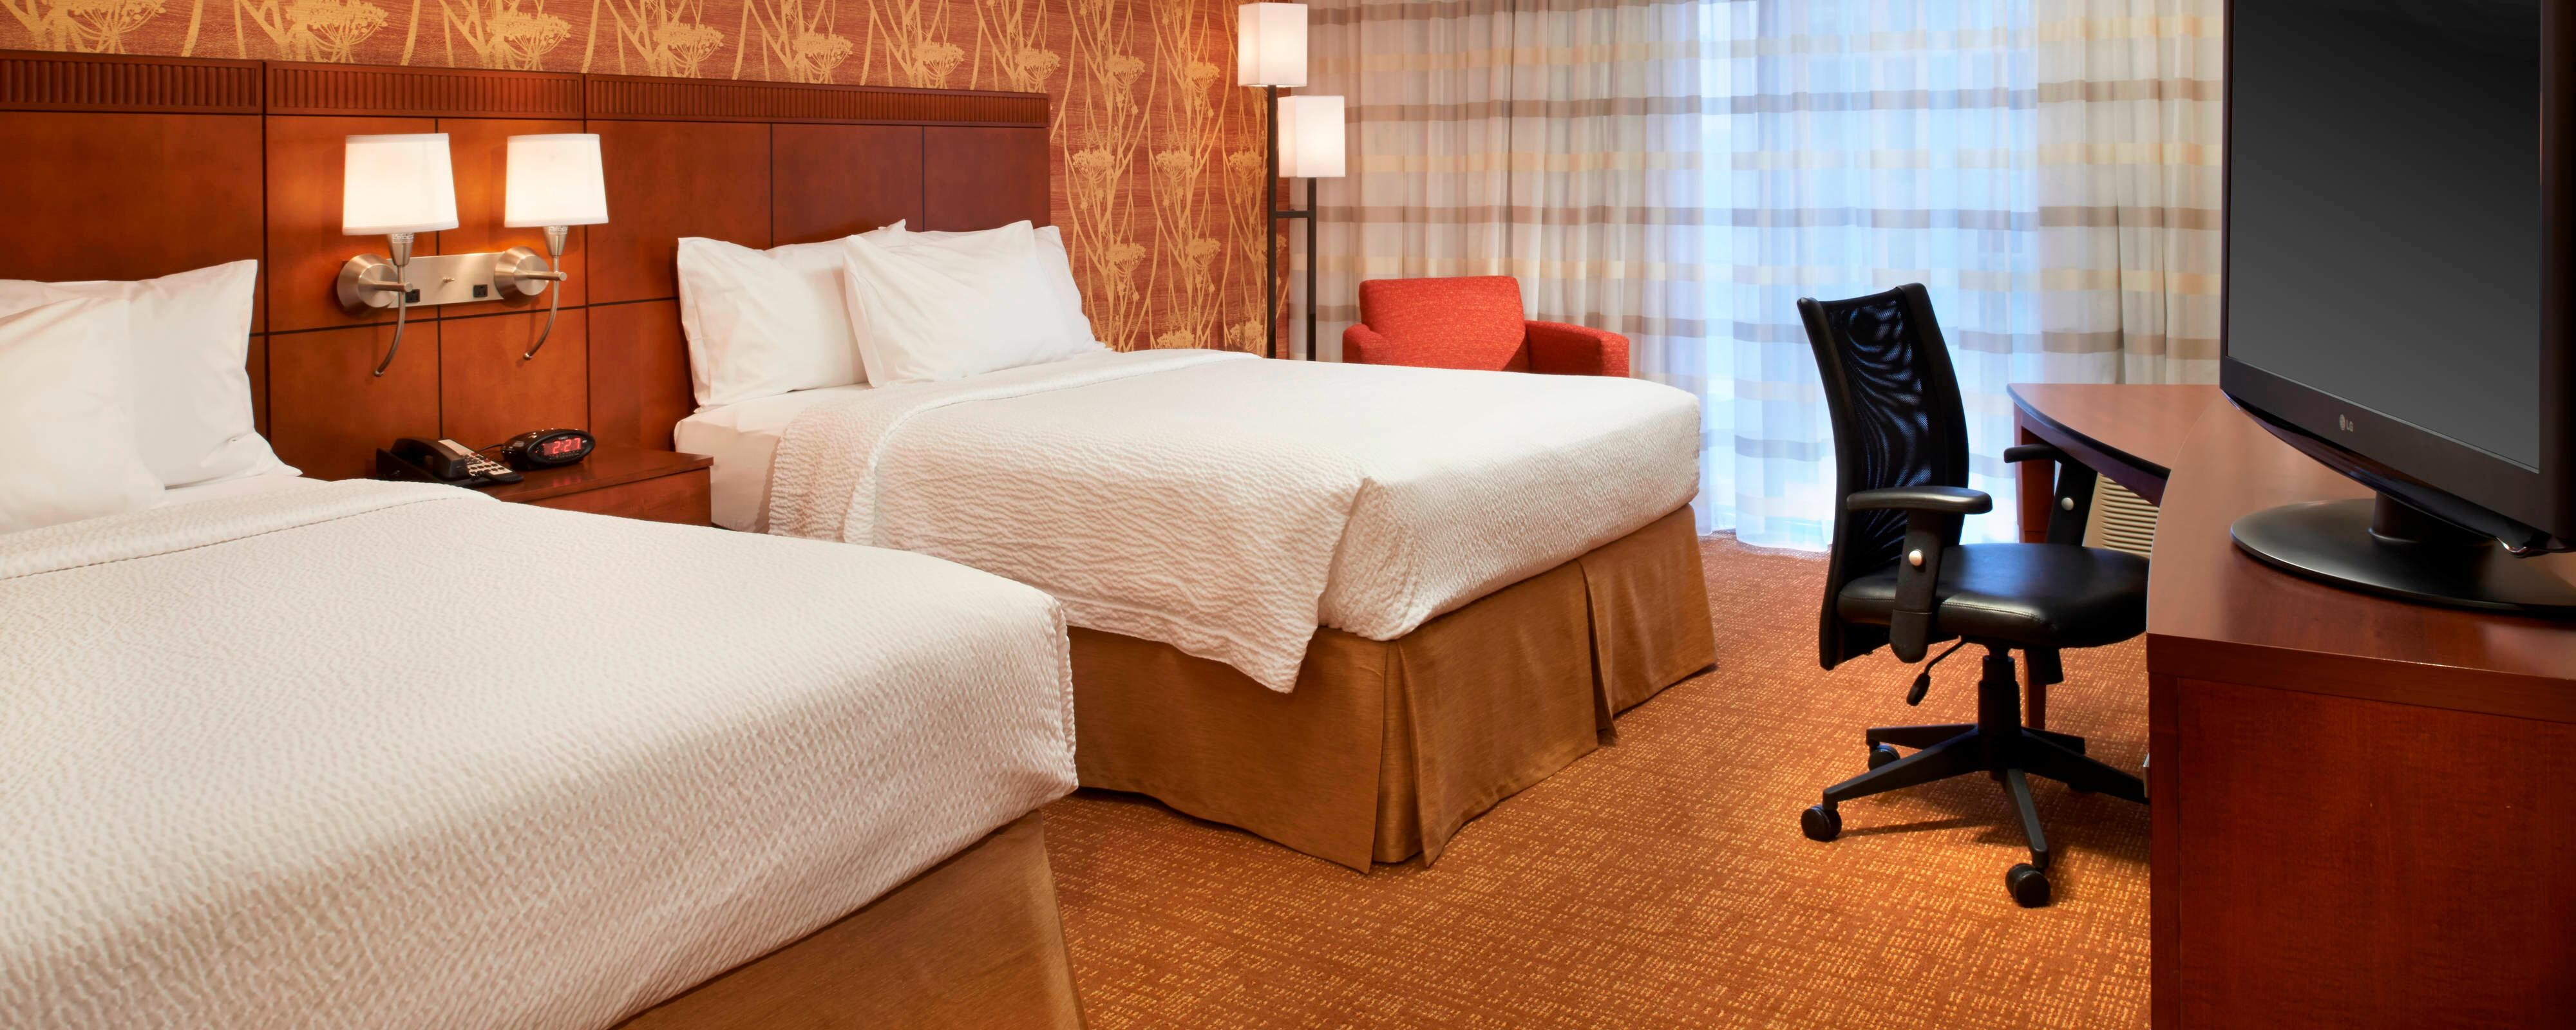 Hotels In Oakbrook Terrace Illinois Courtyard Chicago